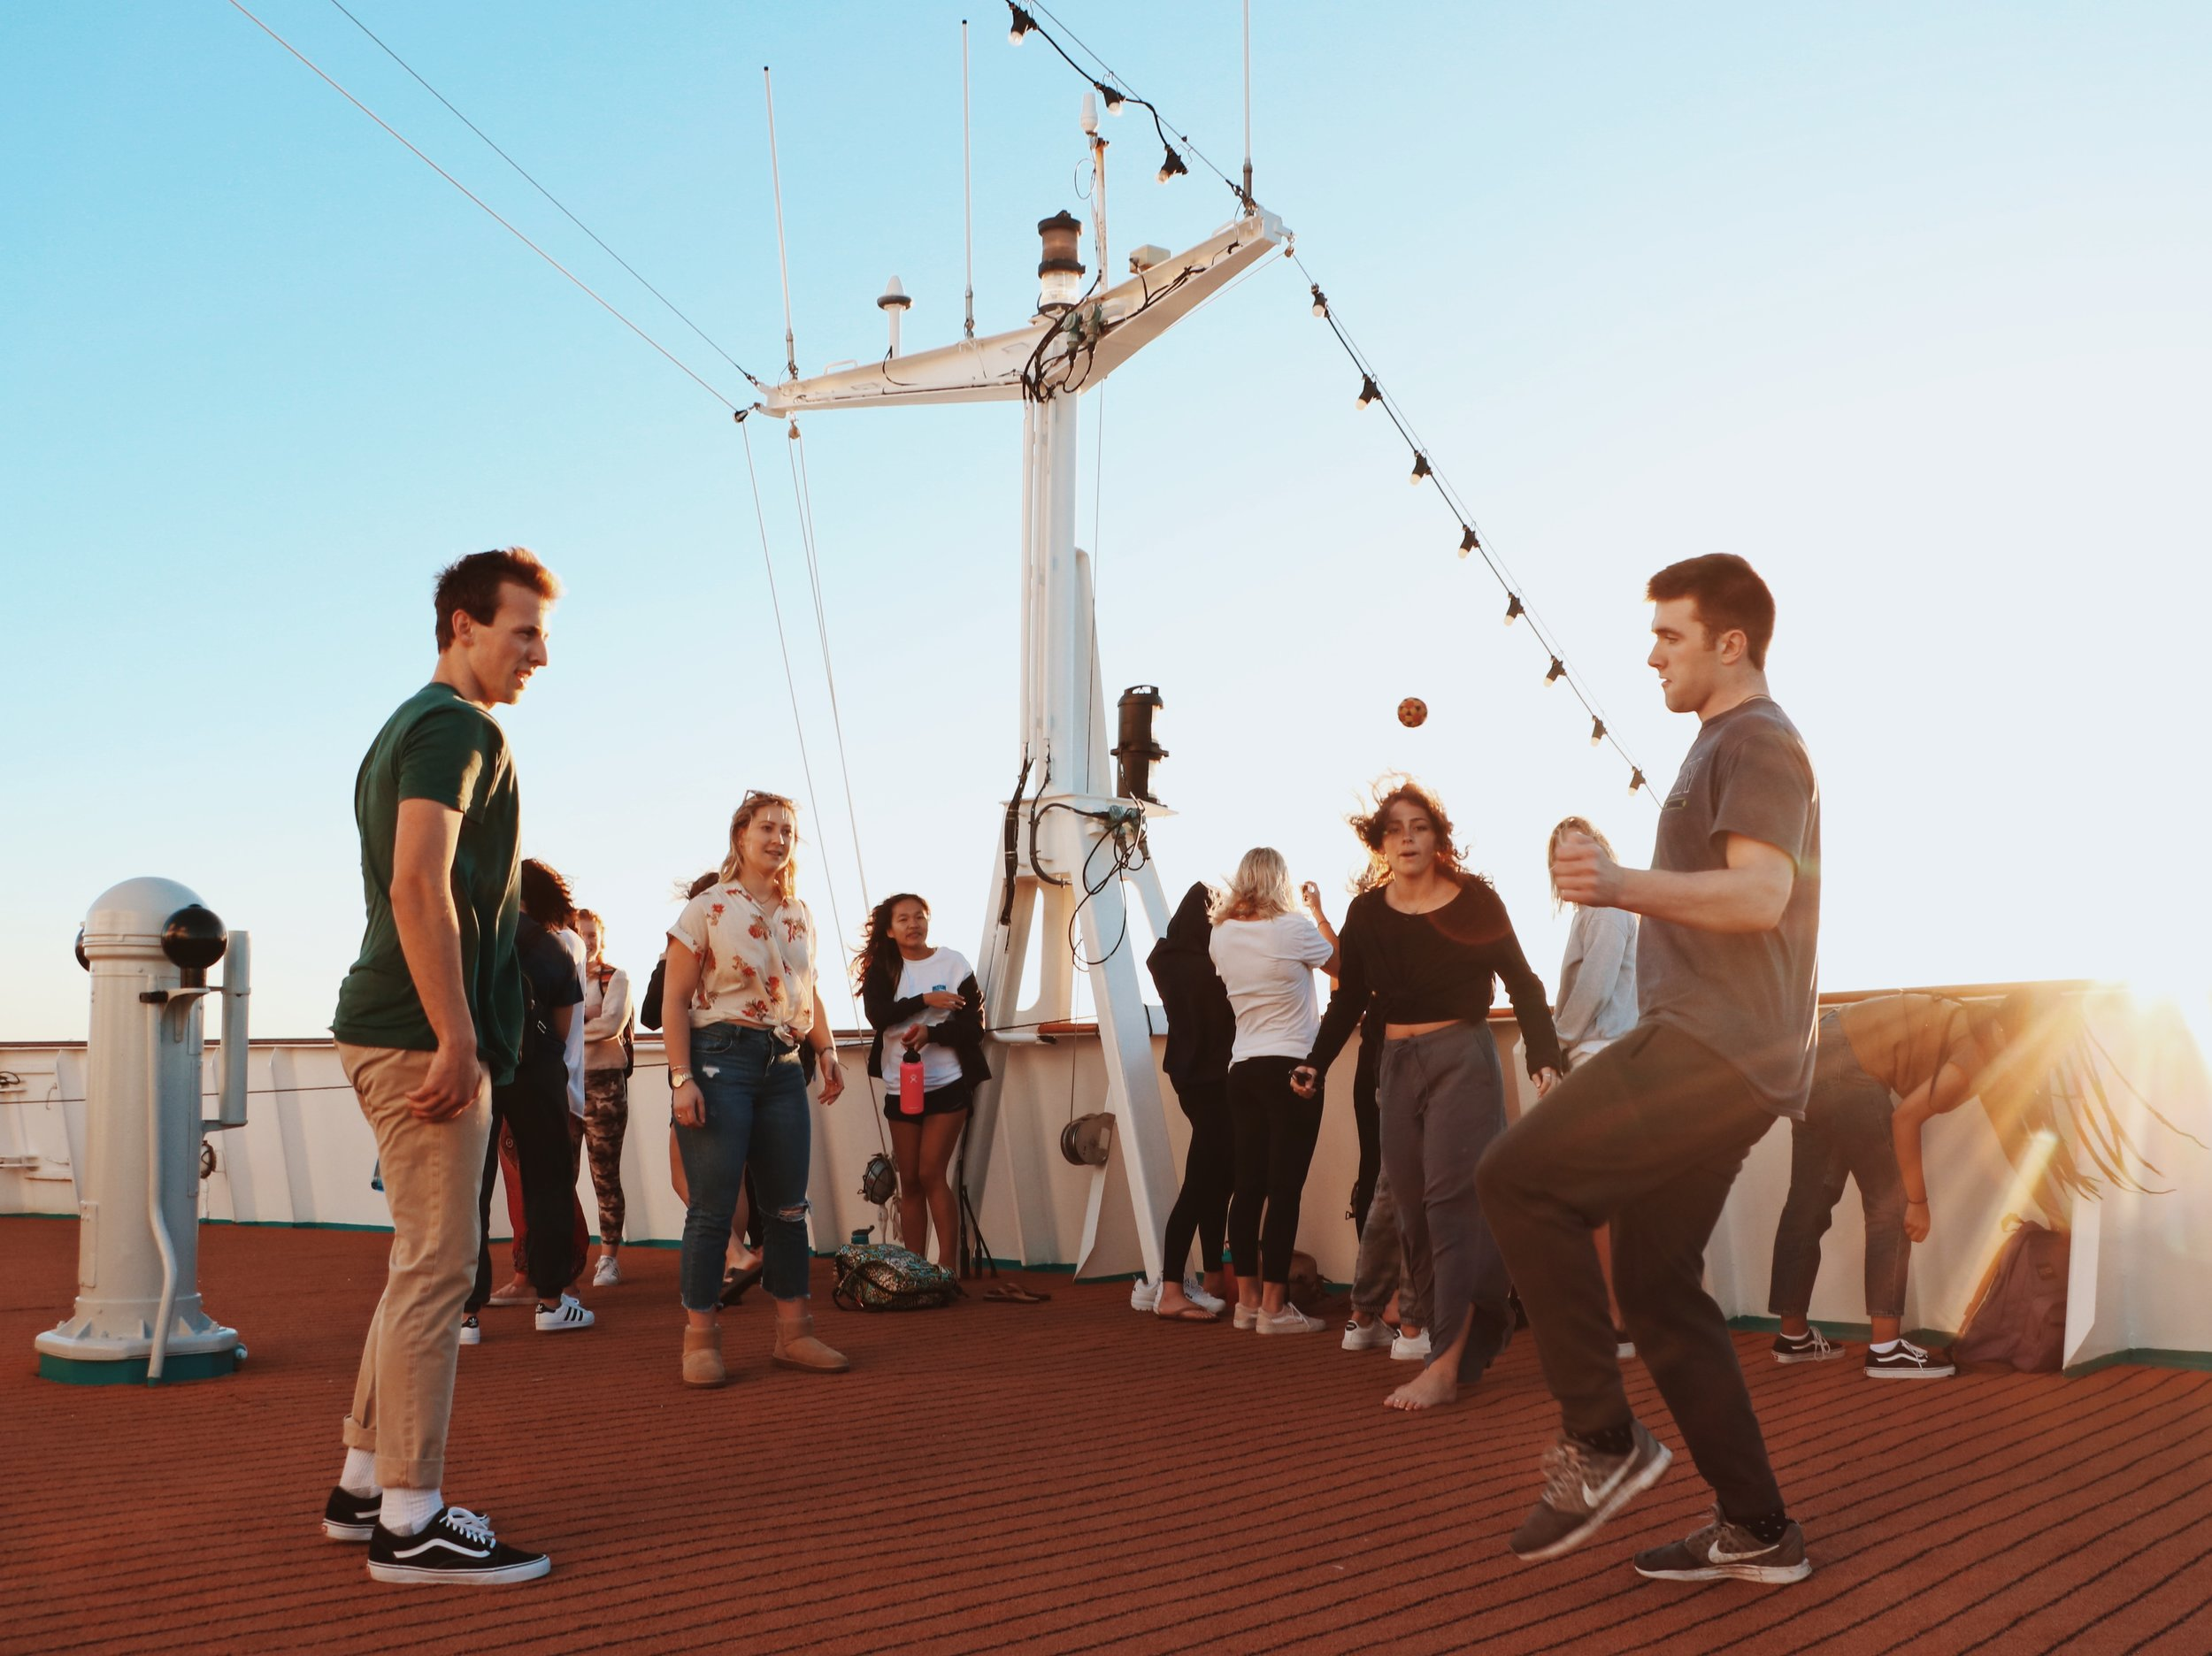 Students wait for sunset by playing hackeysack on the Lido deck. This is a popular gathering place for outdoor activities such as yoga and stargazing.